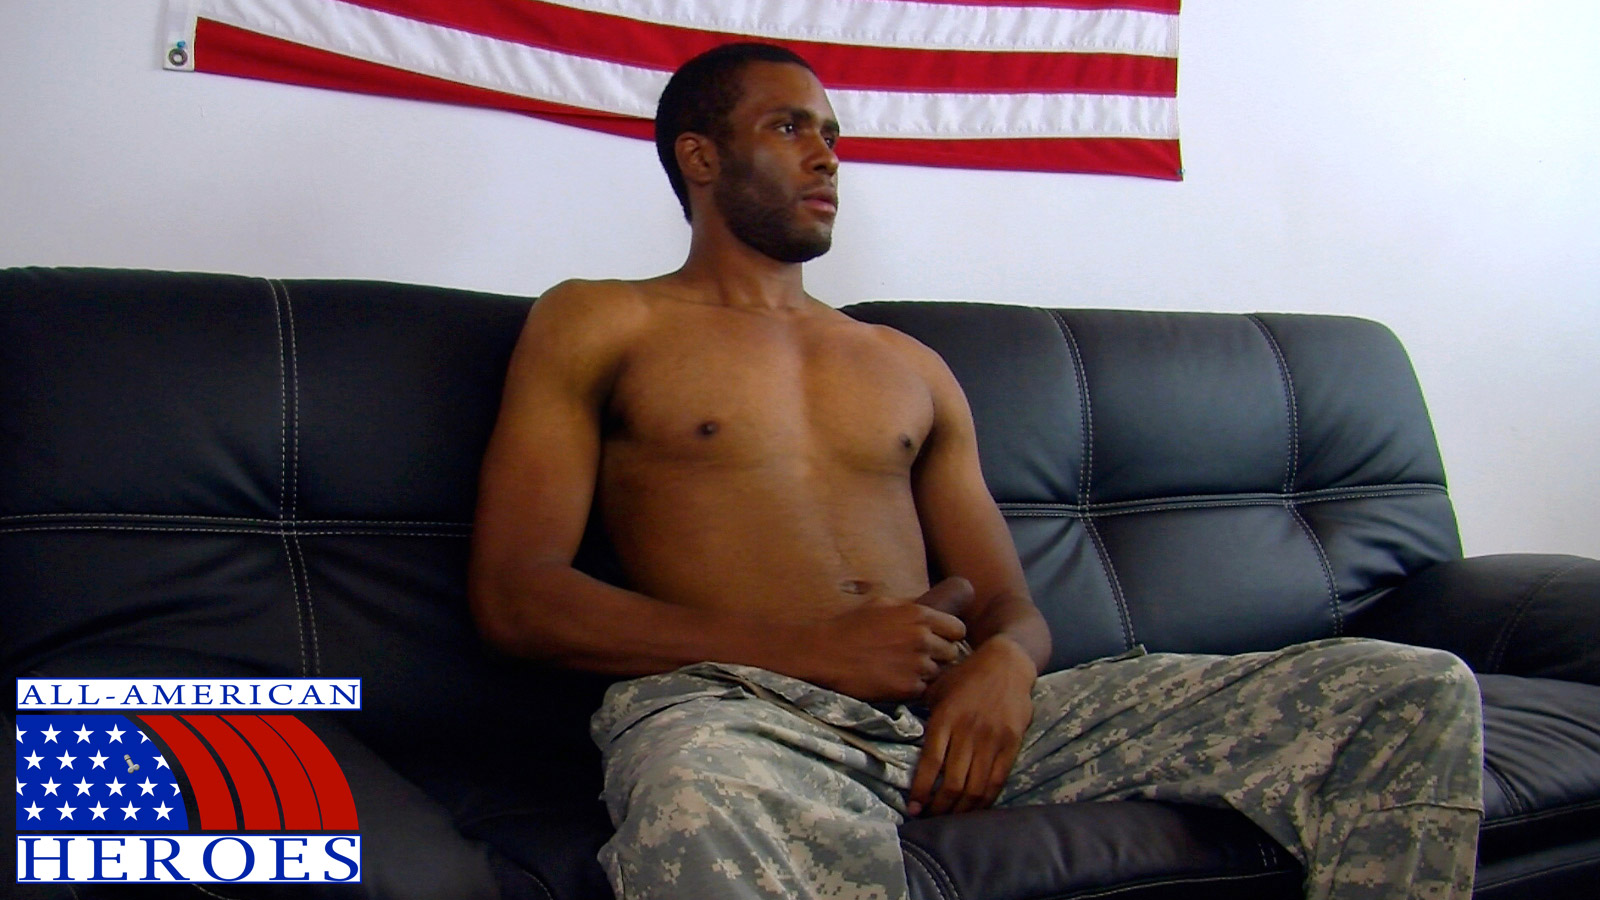 All American Heroes - Black military man Private Robert drops his camos and unloads!